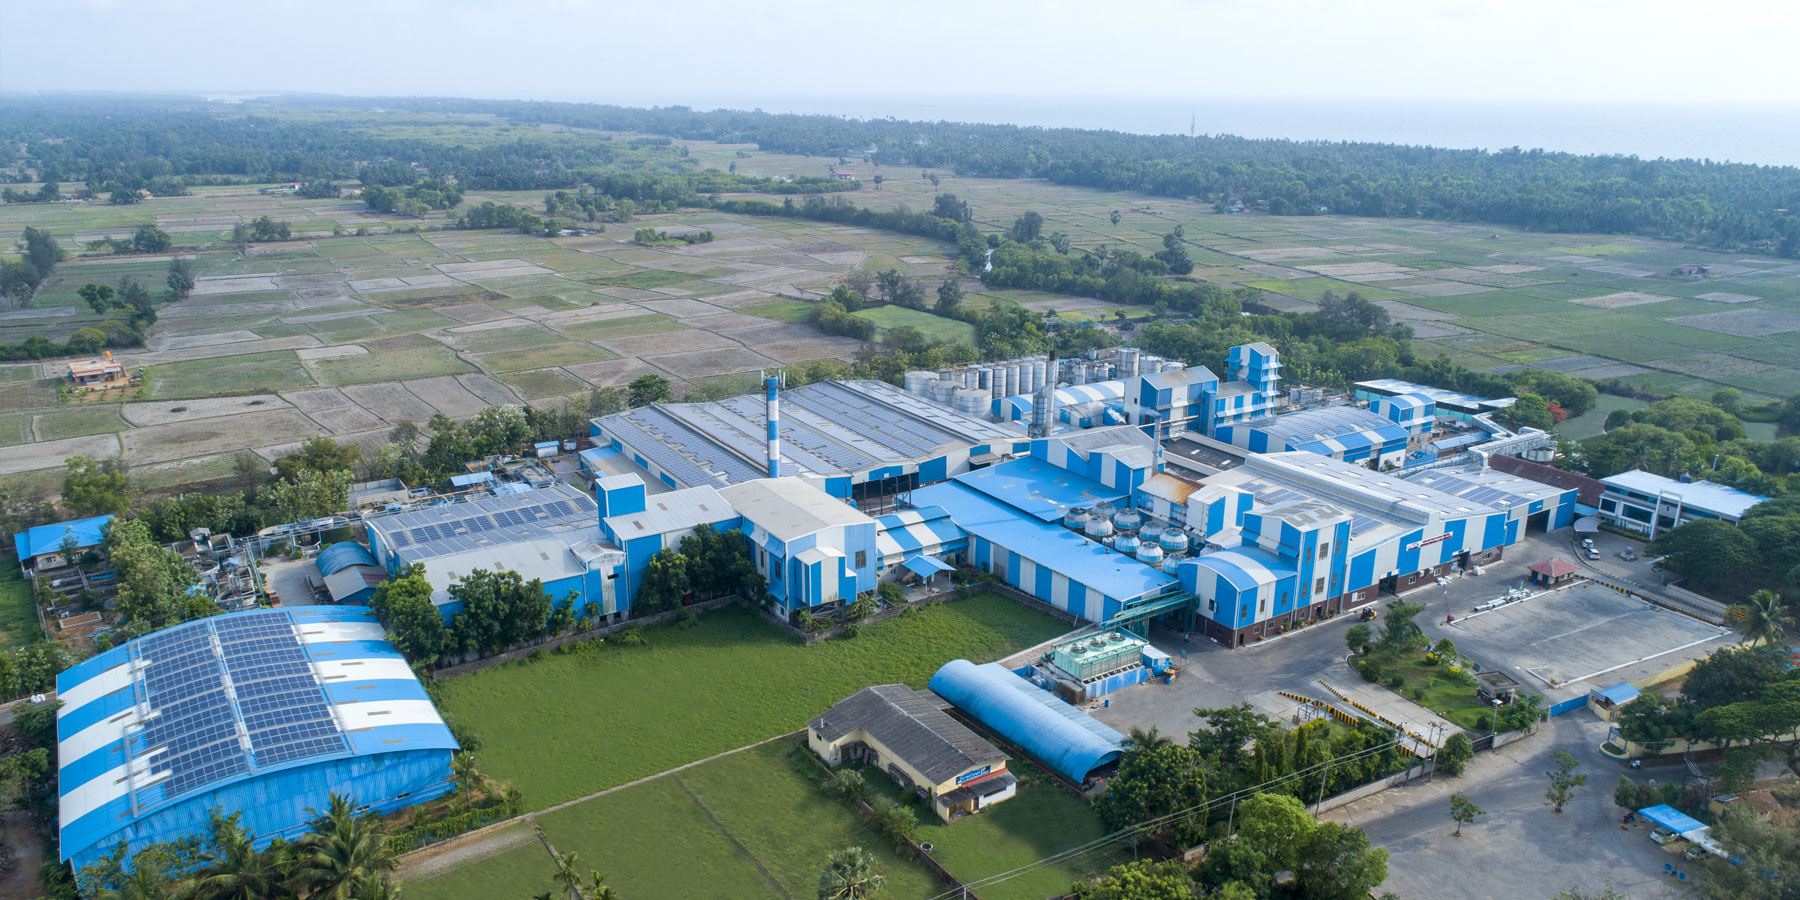 Aerial view of the Janatha Fish Meal Factory